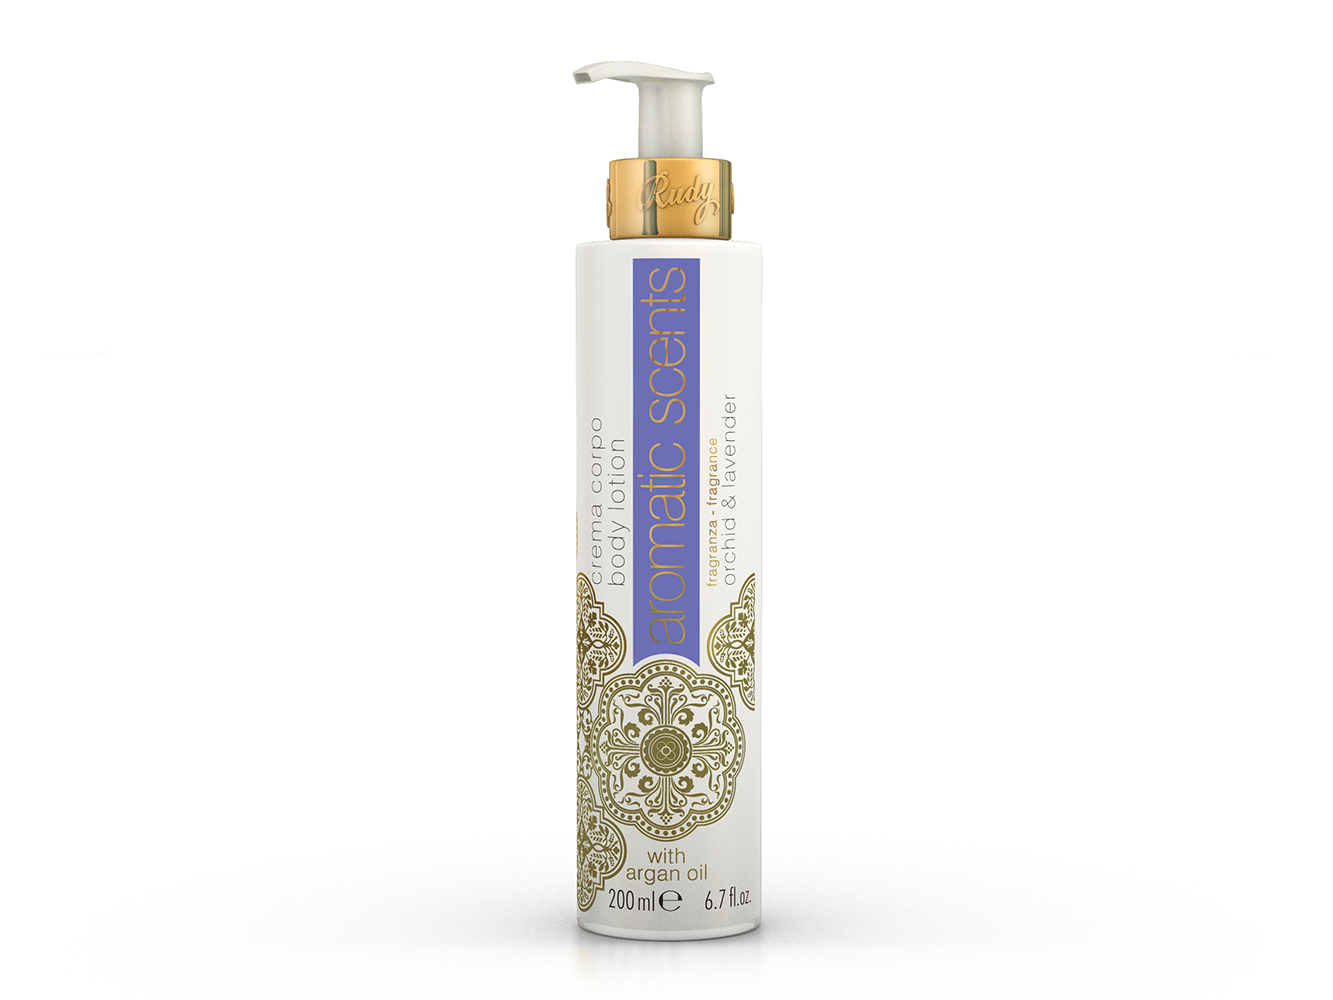 2781 RUDY AROMATIC FLORAL- Mléko na ruce a tělo 200ml- LEVANDULE A ORCHID